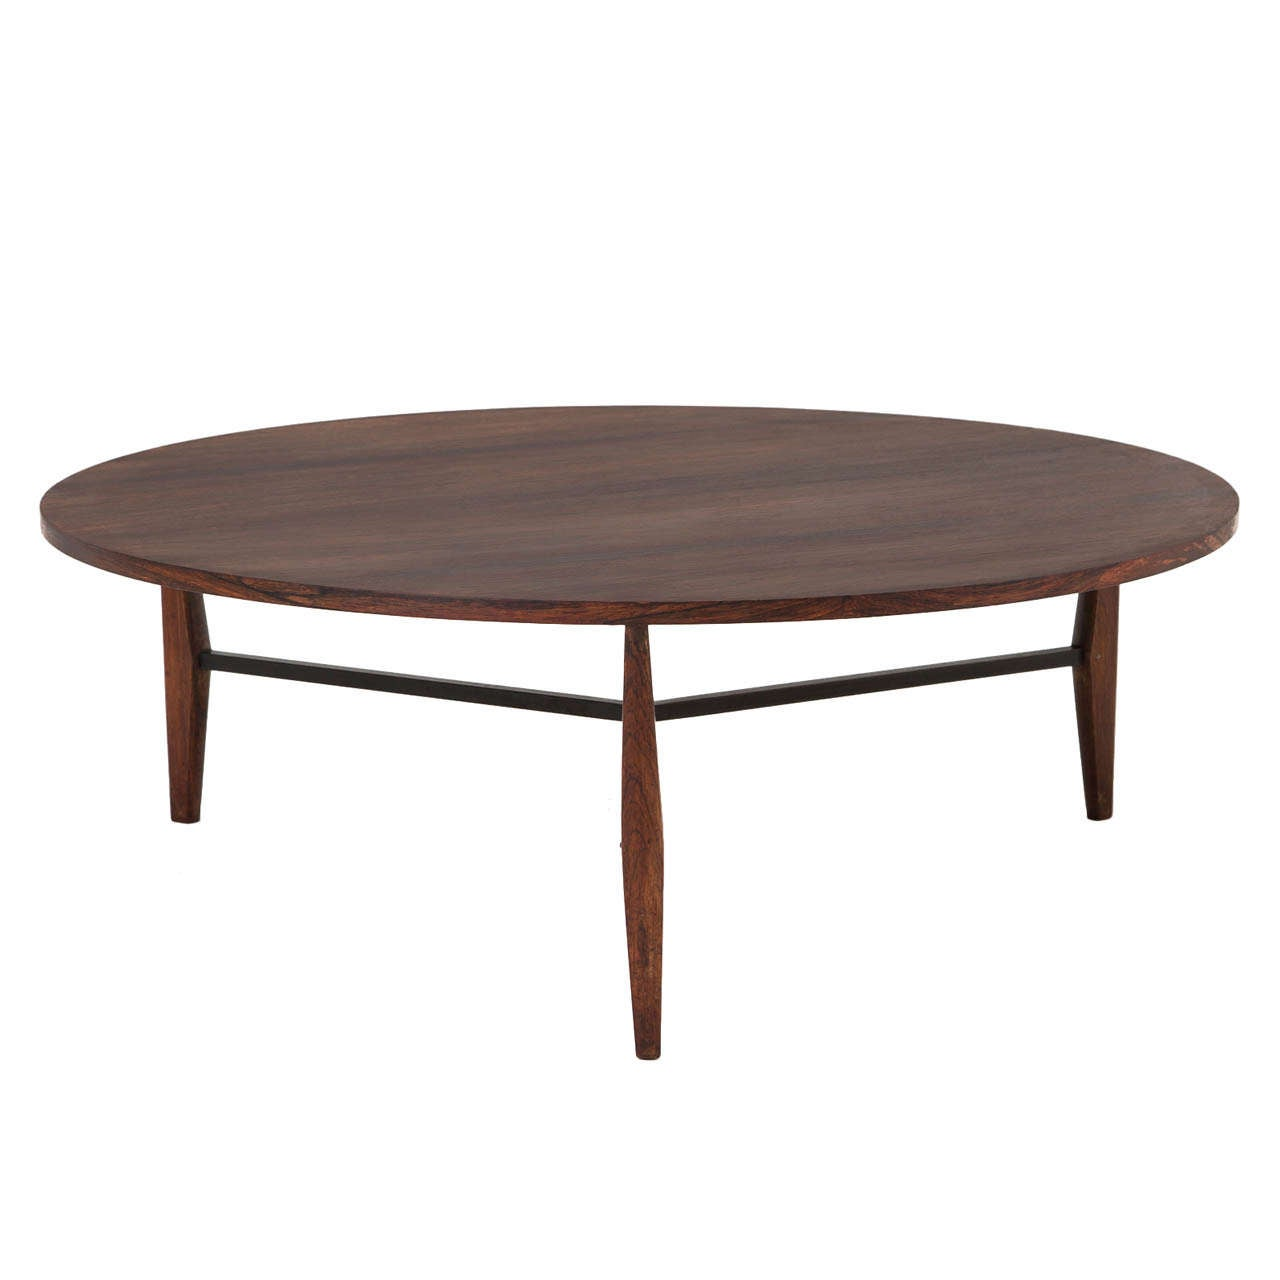 Rare harry bertoia cocktail table in rosewood for knoll germany at 1stdibs - Bertoia coffee table ...